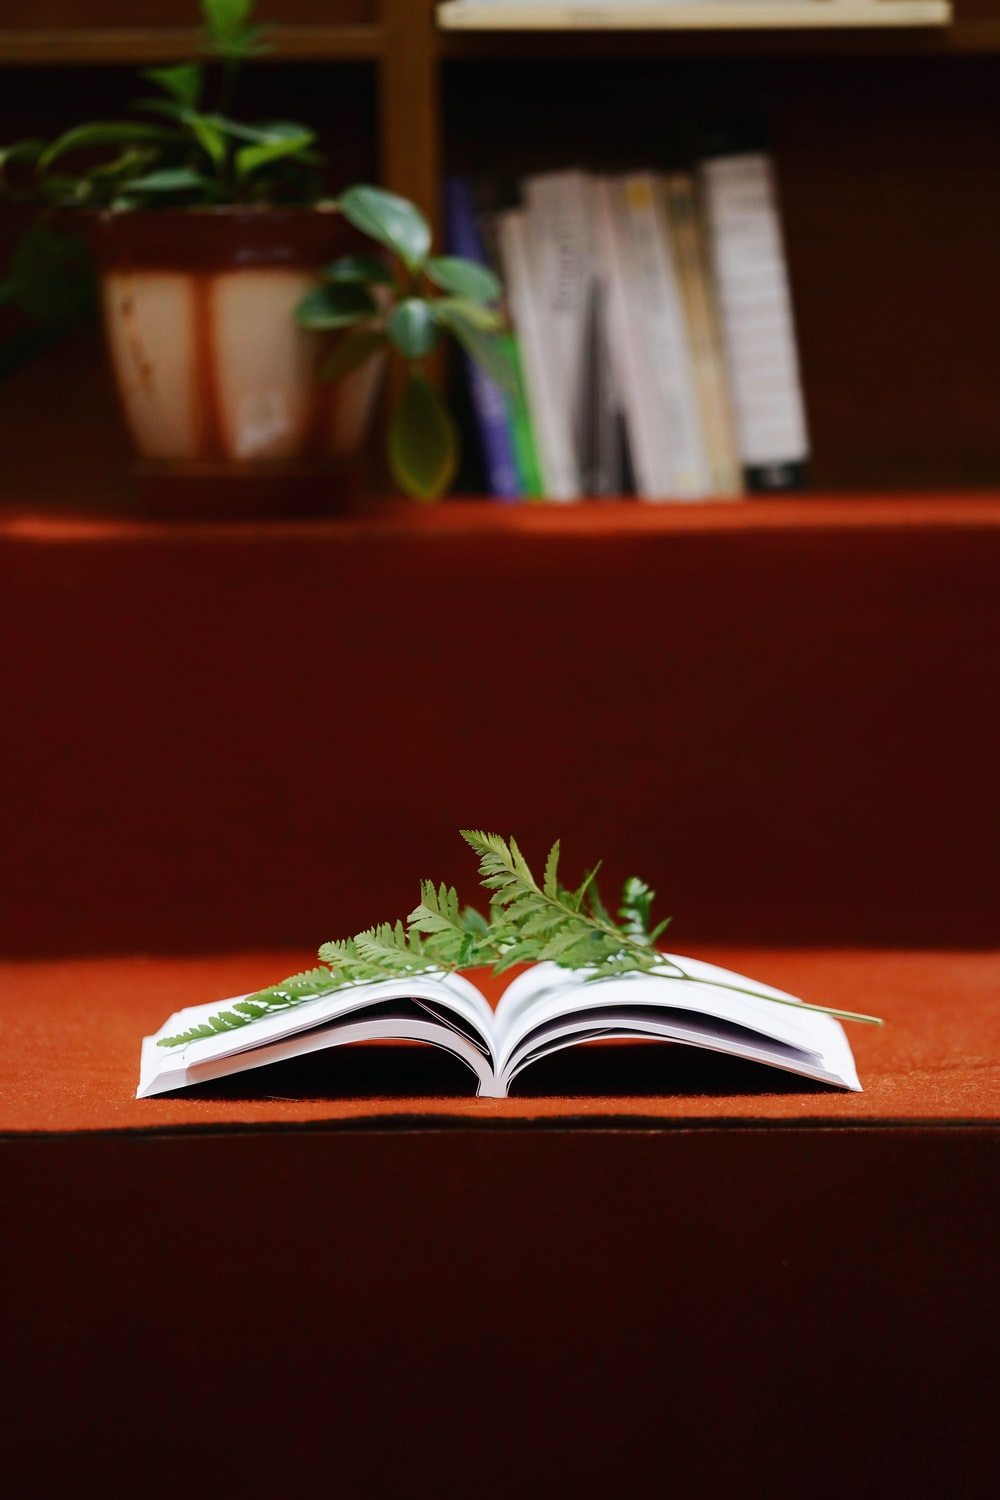 green and white book on brown wooden table